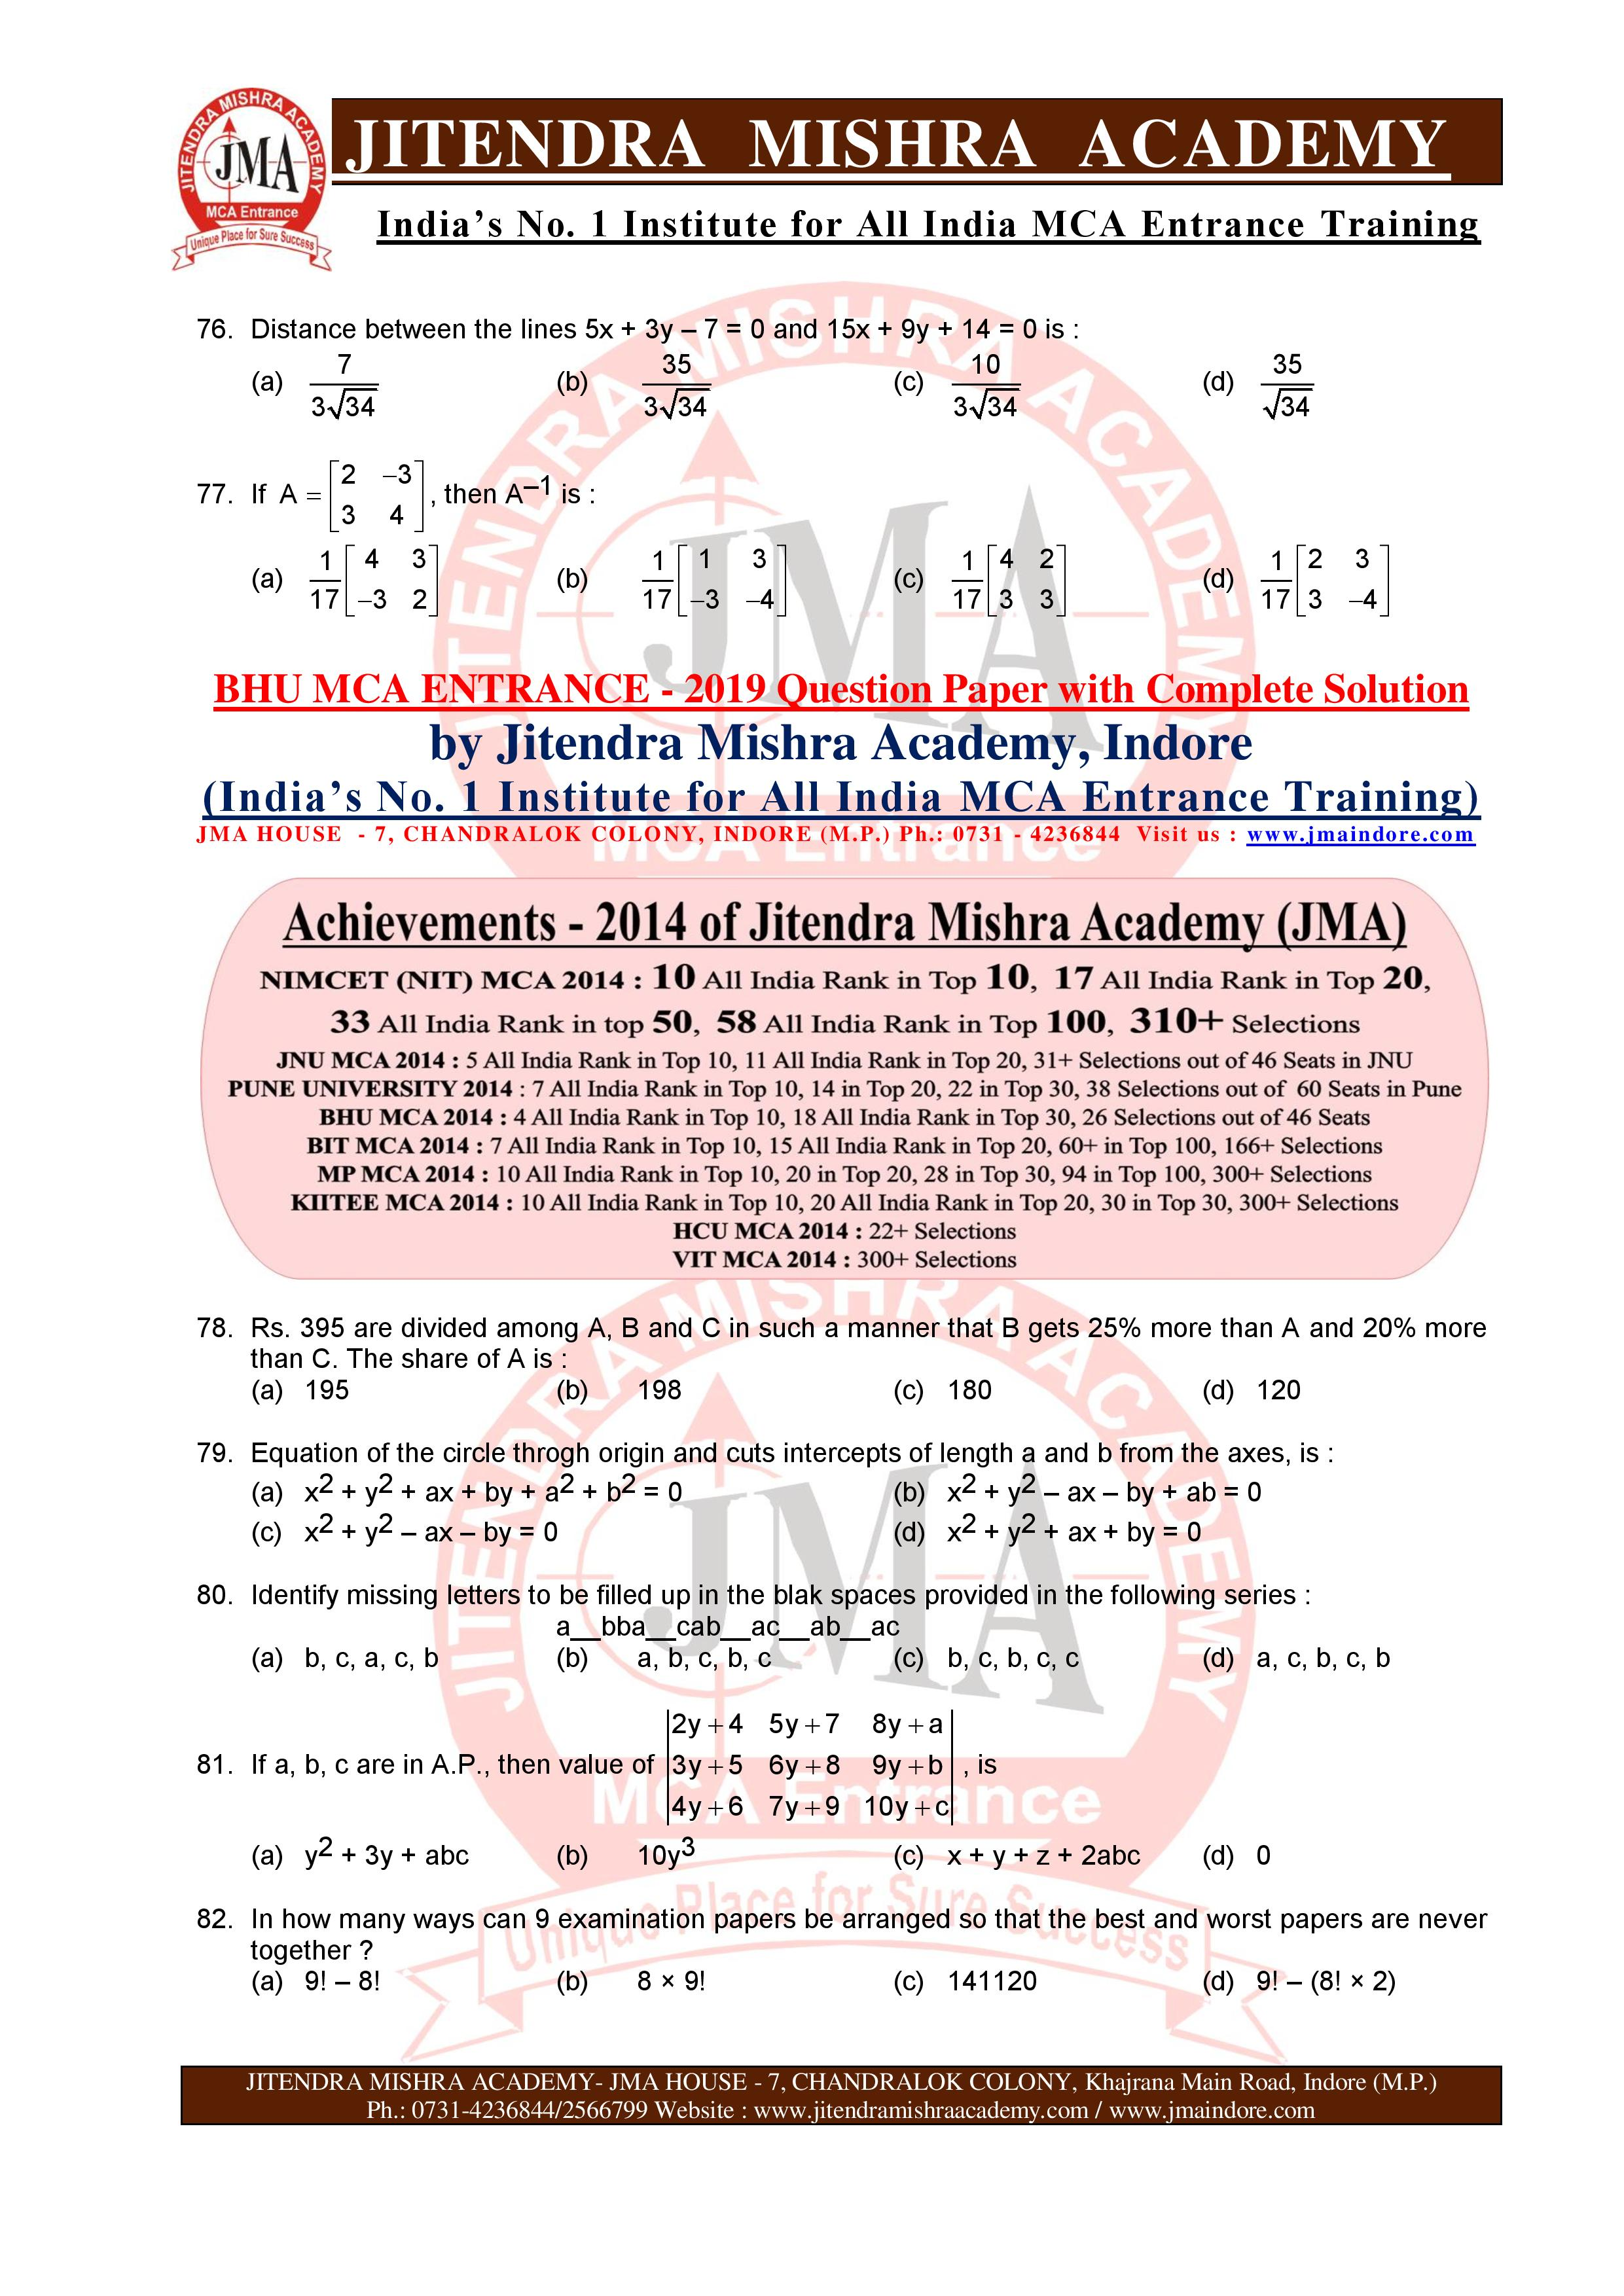 BHU MCA 2019 QUESTION PAPER-page-013